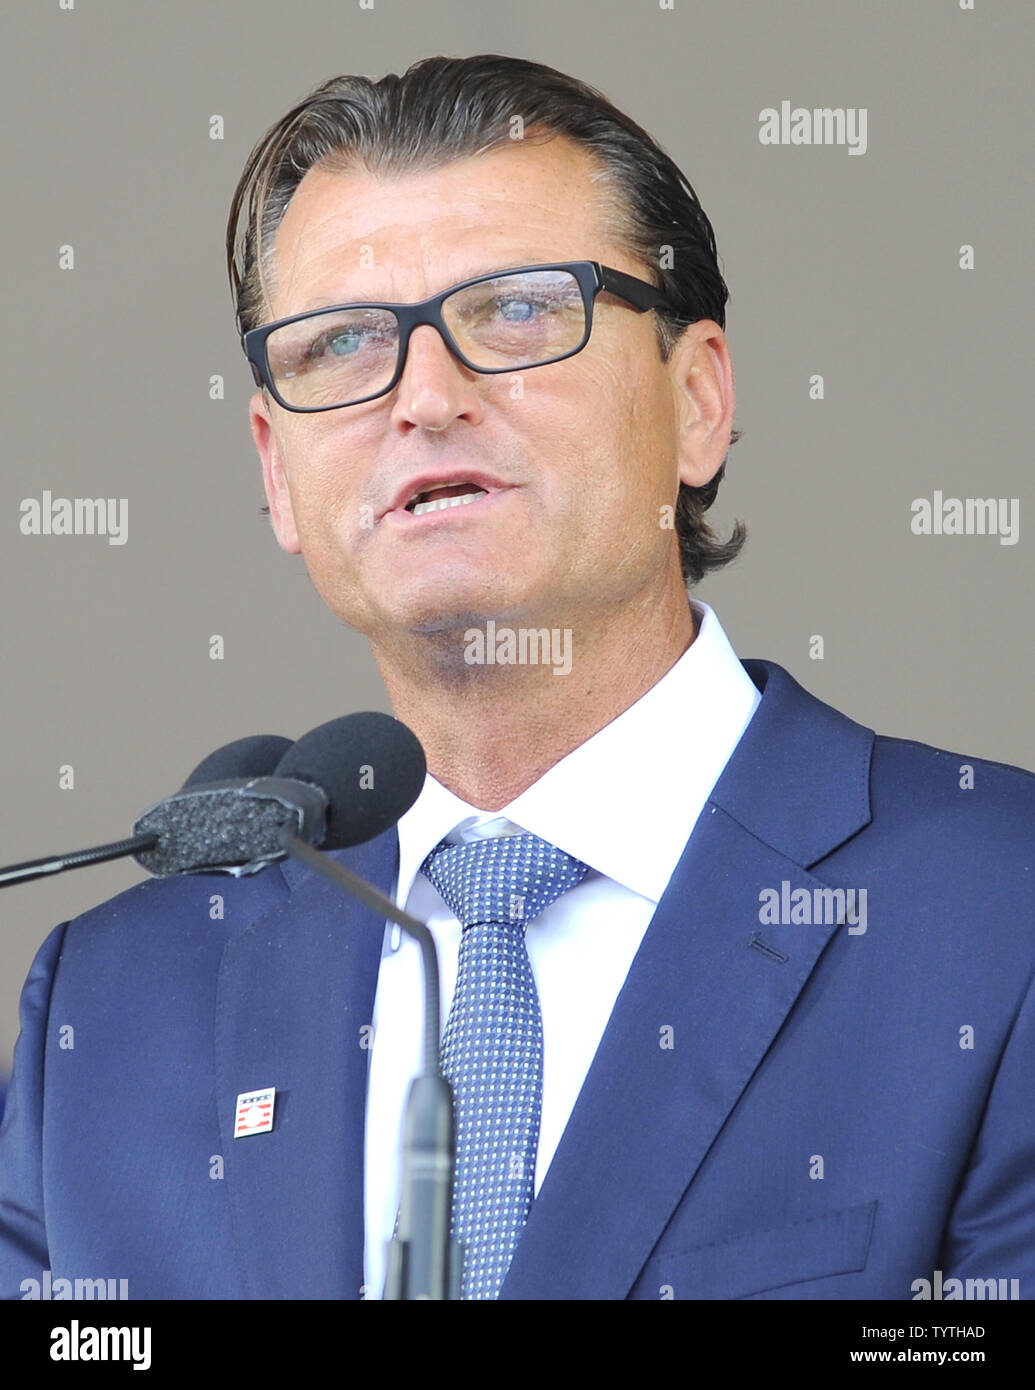 trevor Hoffman delivers his Baseball Hall of Fame induction speech at the Clark Sports Center in Cooperstown, NY on July 29, 2018.  A record 60 Hall of Famers are scheduled to be in Central New York to honor Vladimir Guerrero, Trevor Hoffman, Chipper Jones, Jack Morris, Jim Thome and Alan Trammell at the National Baseball Hall of Fame and Museum during Hall of Fame Weekend on July 27-30.     Photo by George Napolitano/UPI - Stock Image